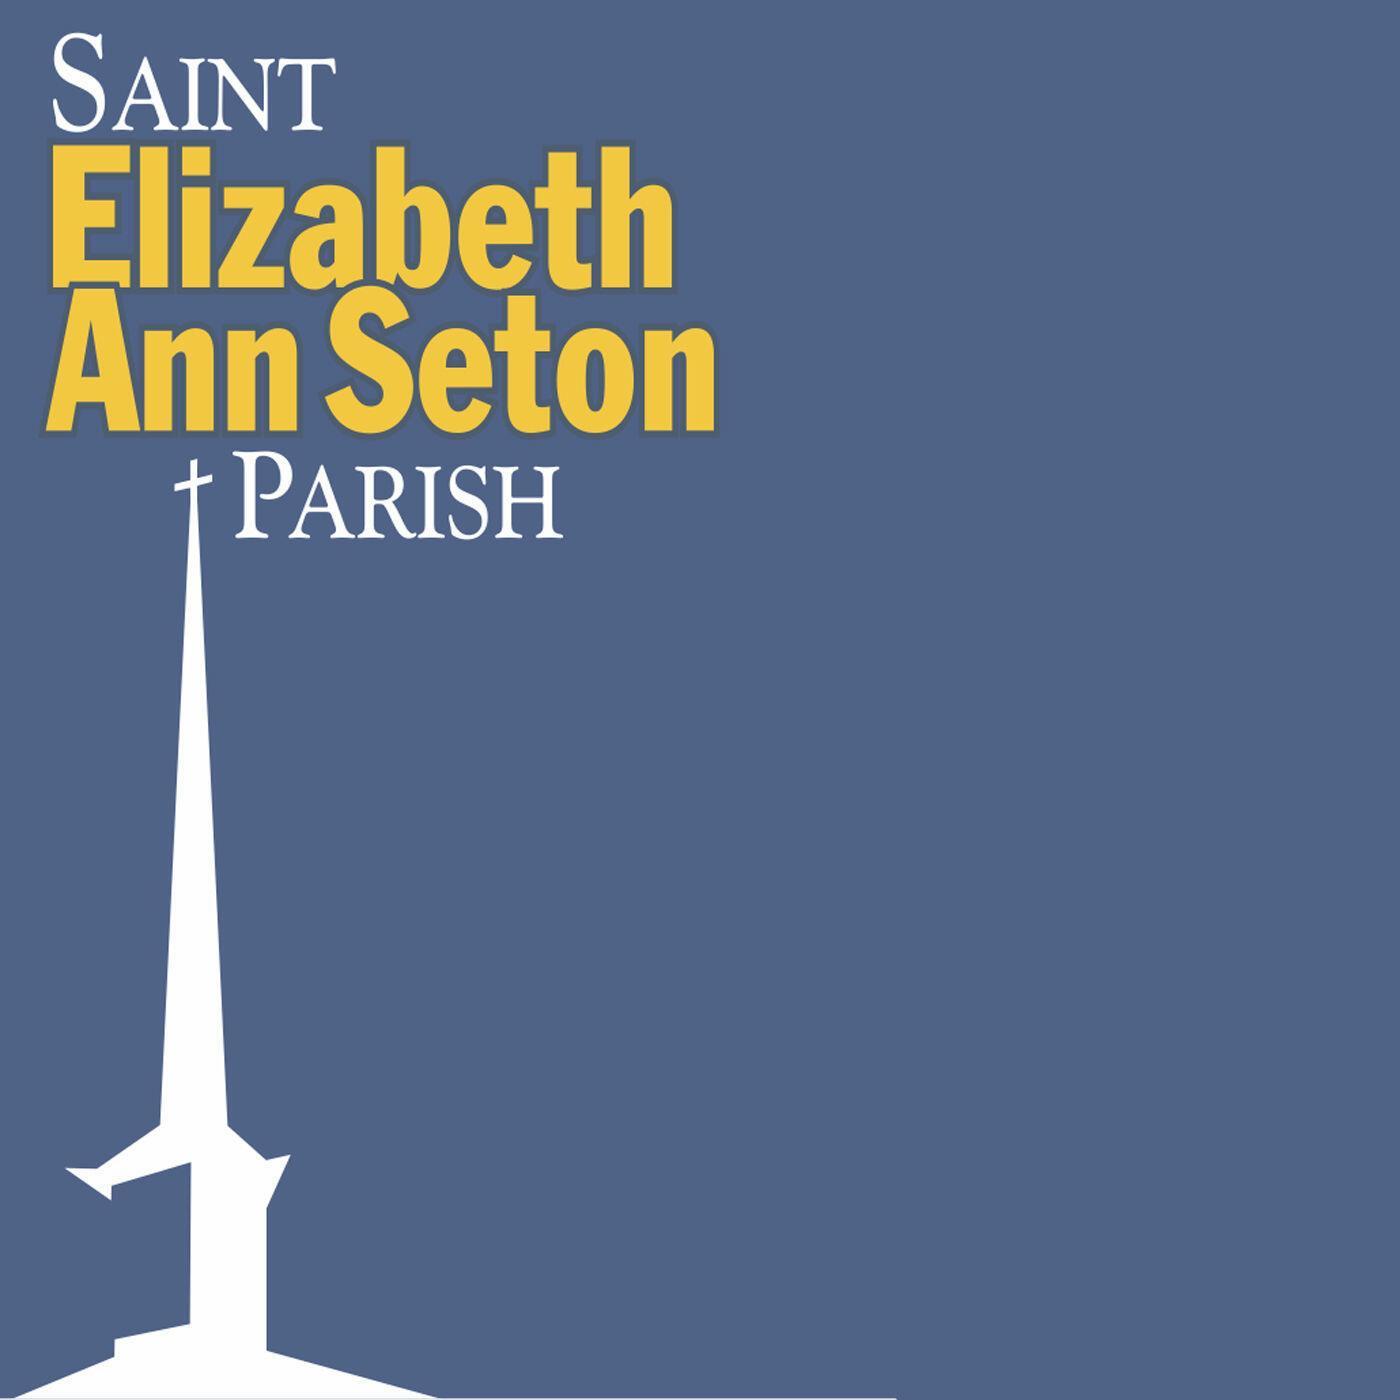 The Solemnity of the Most Holy Body and Blood of Christ (06-06-21) Father Dubois - Saint + Elizabeth + Ann + Seton + Parish   iHeartRadio